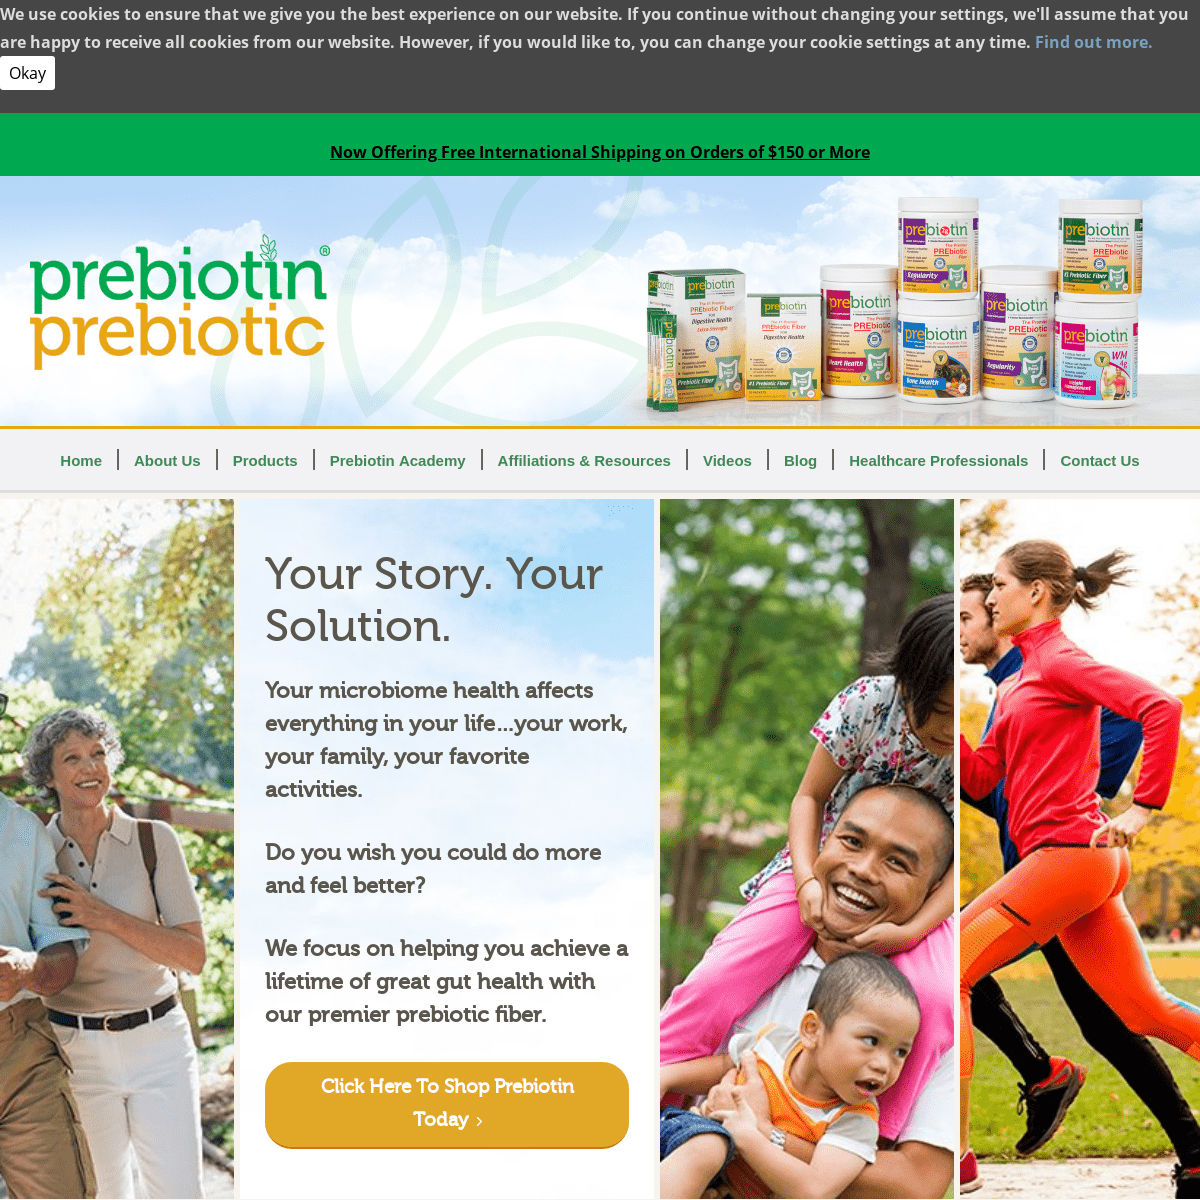 Prebiotic Supplements Backed By Science - Prebiotin™ Prebiotic Supplements